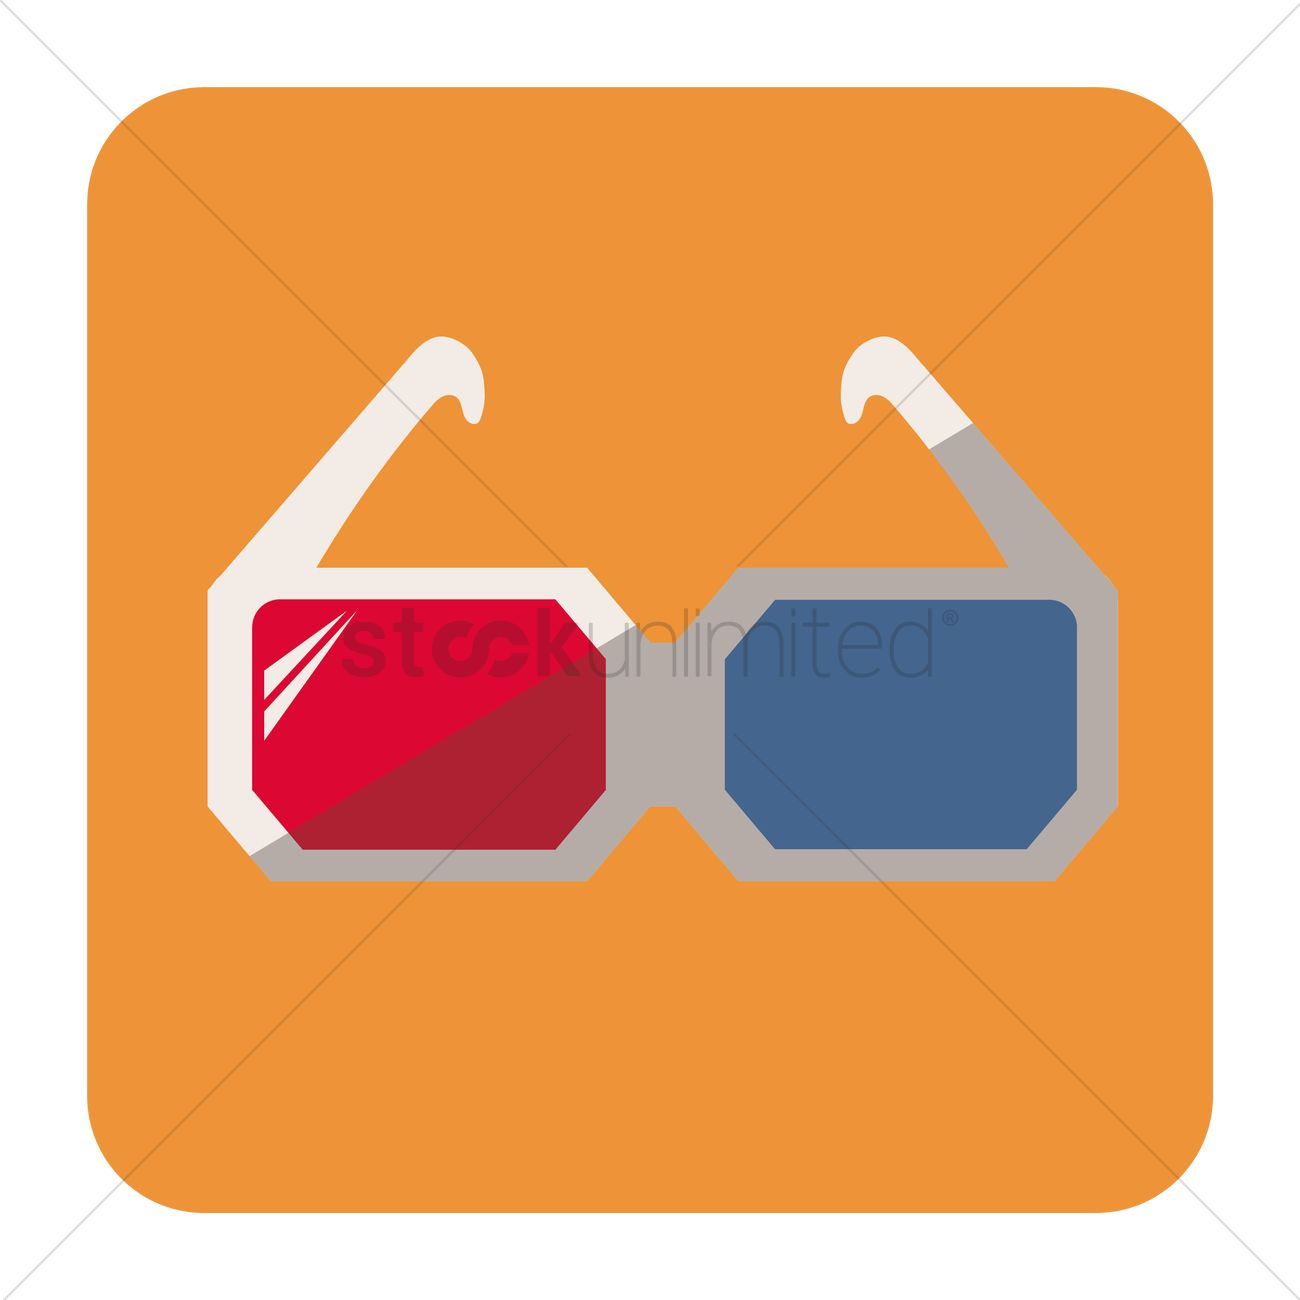 Free Anaglyph 3d glasses Vector Image.